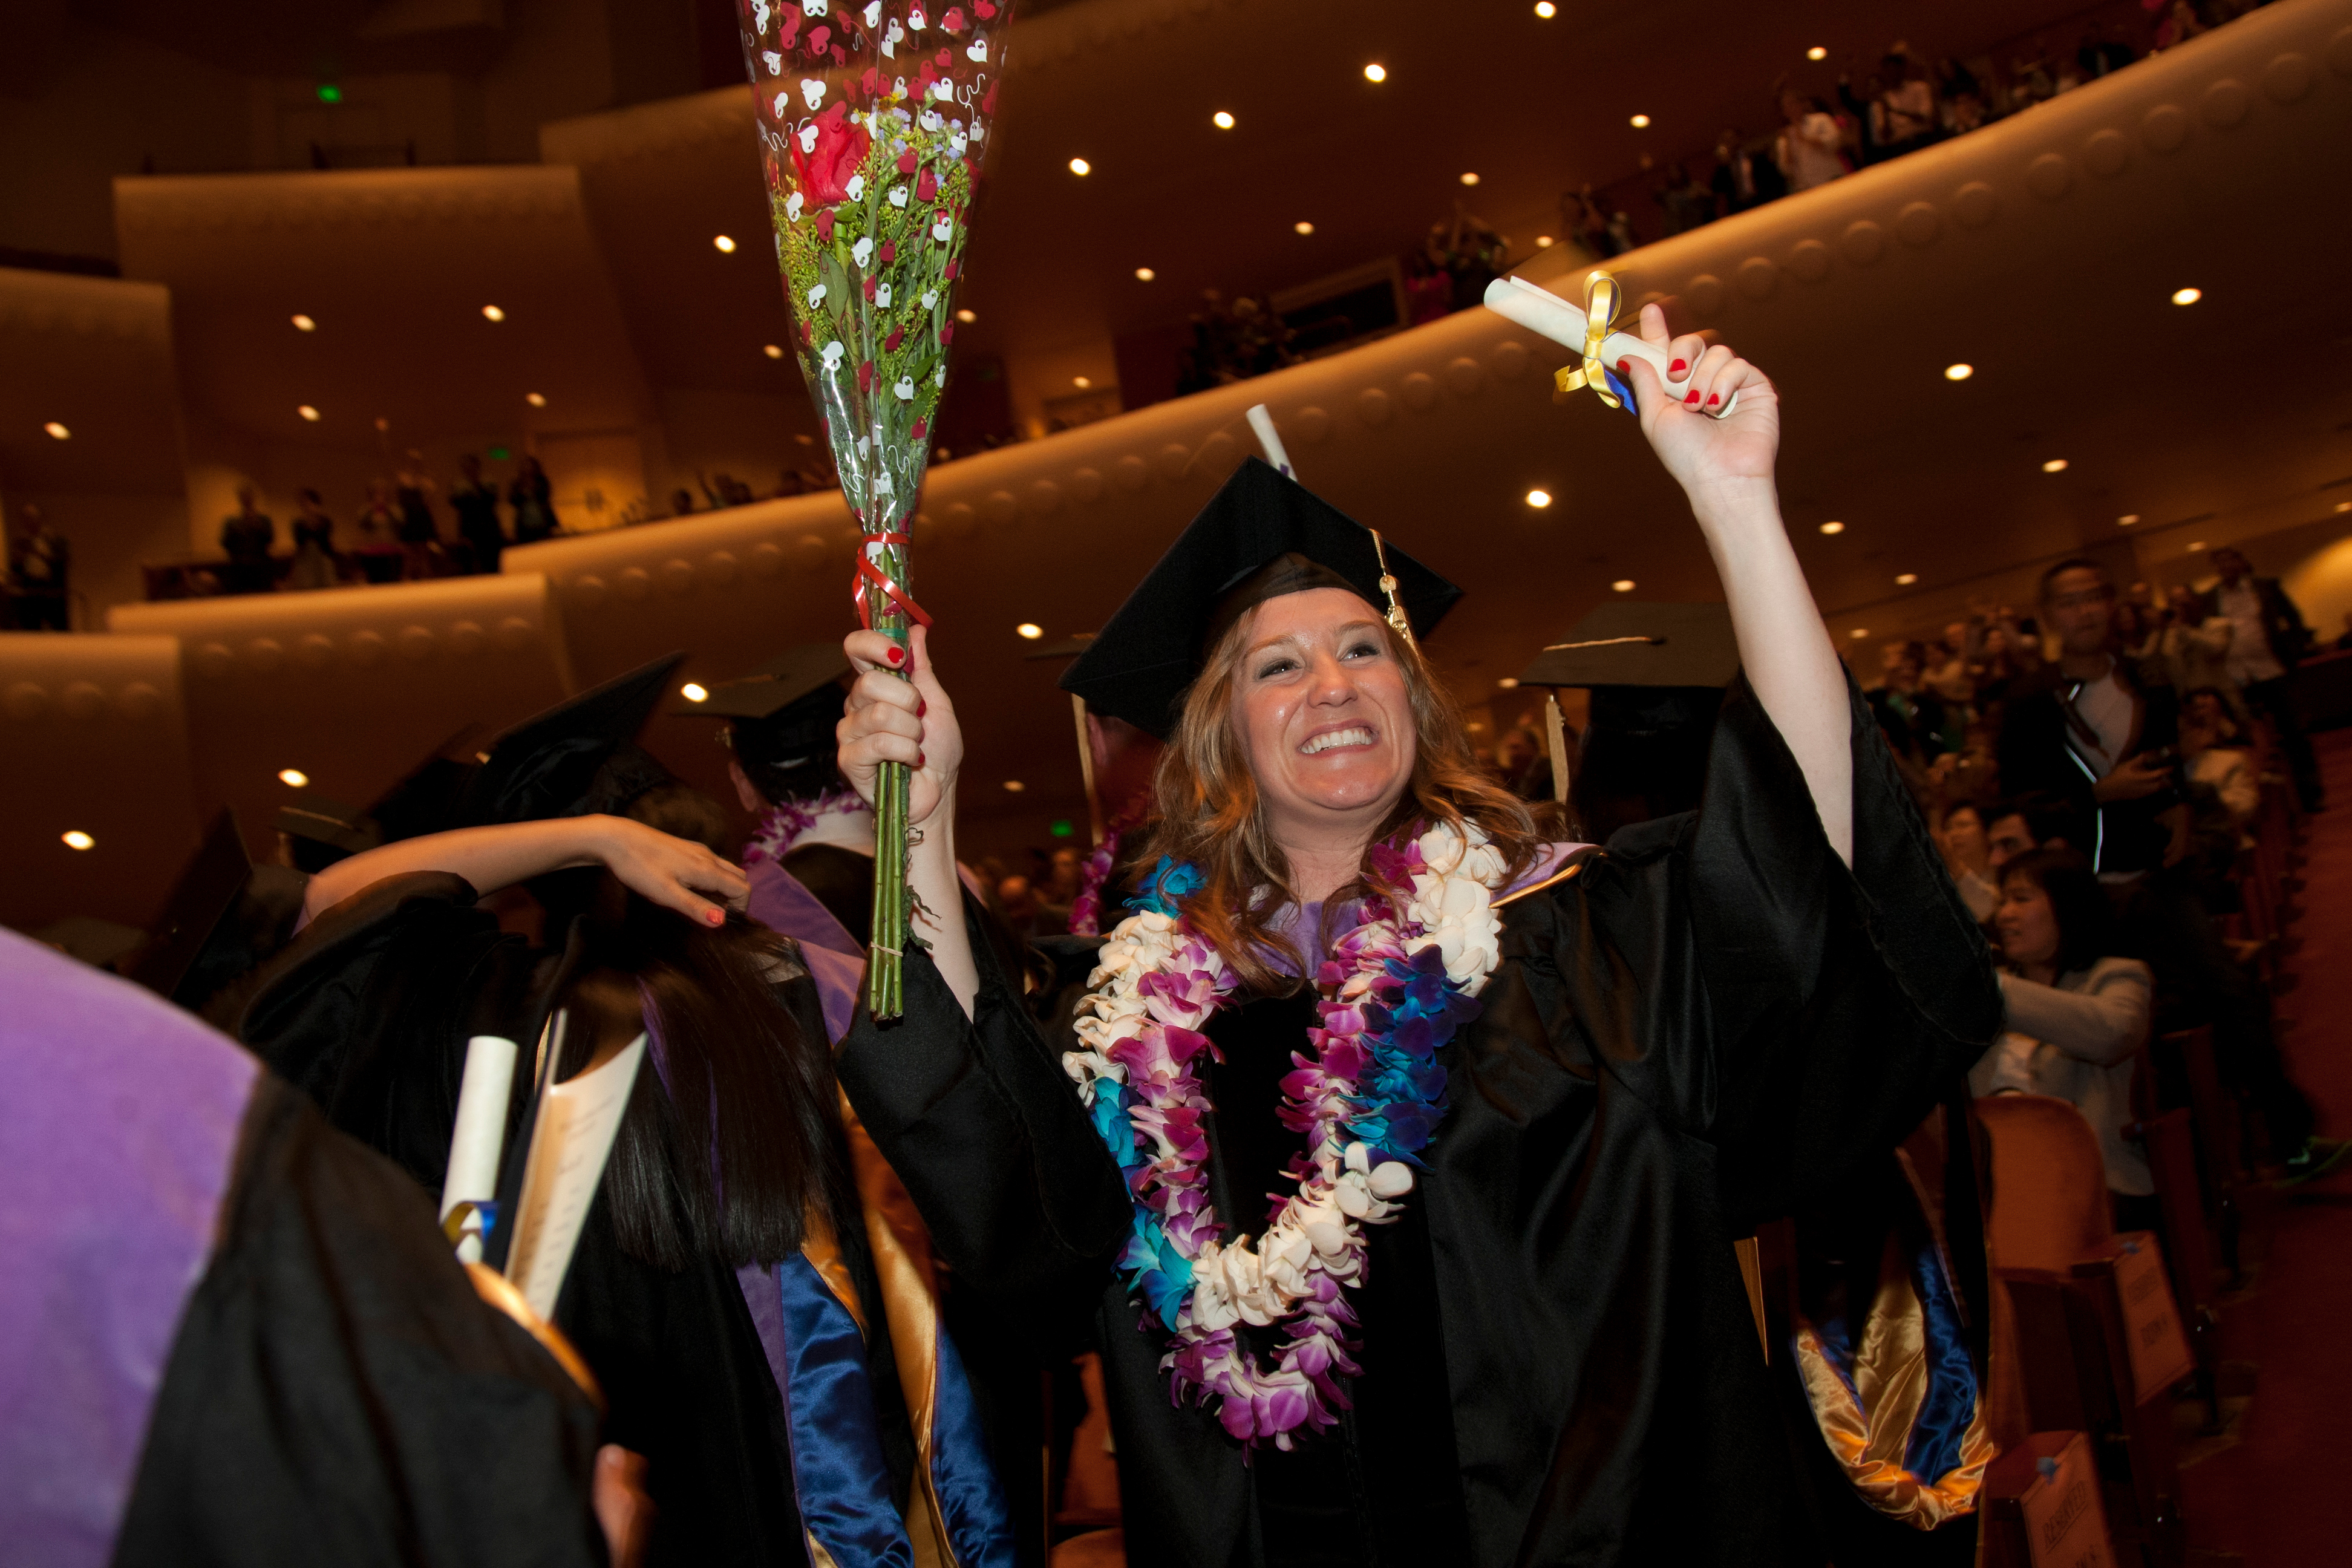 Graduates cheer after receiving their degrees from the School of Dentistry, which strives to be a worldwide leader in dental education and public health, clinical practice and scientific discovery.